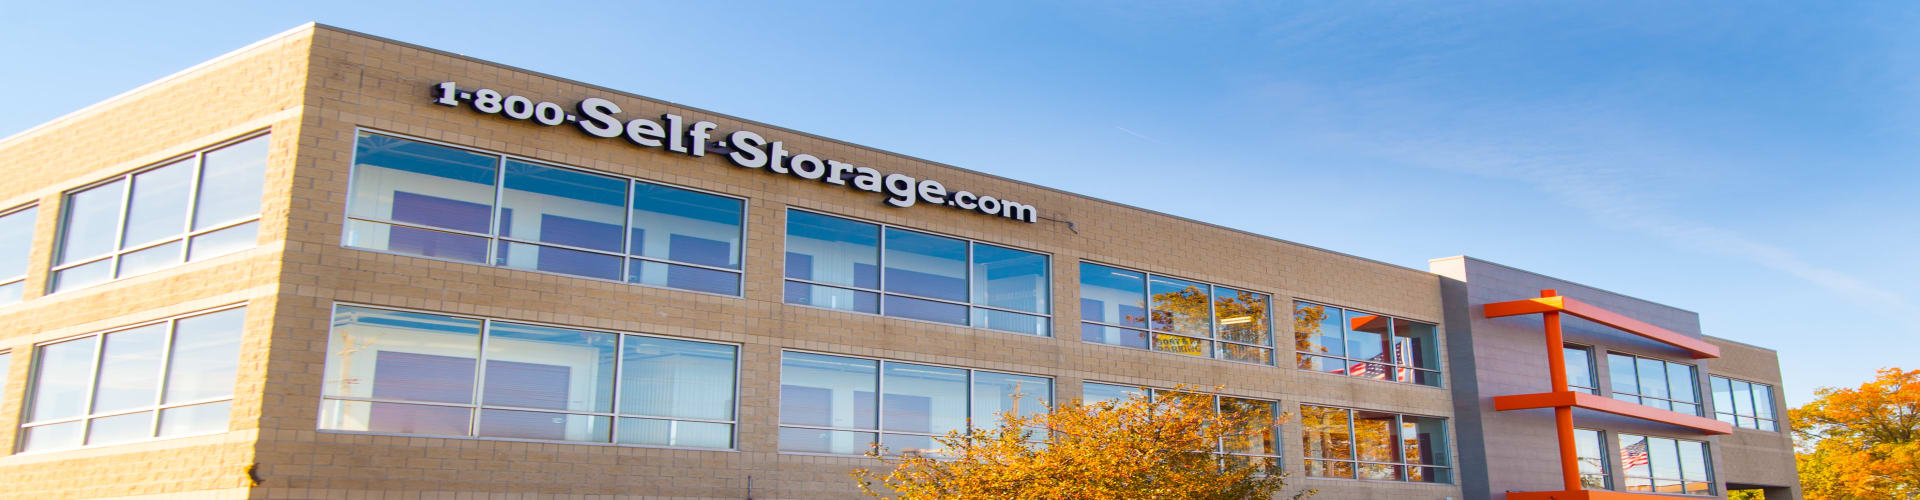 Self storage in Troy MI